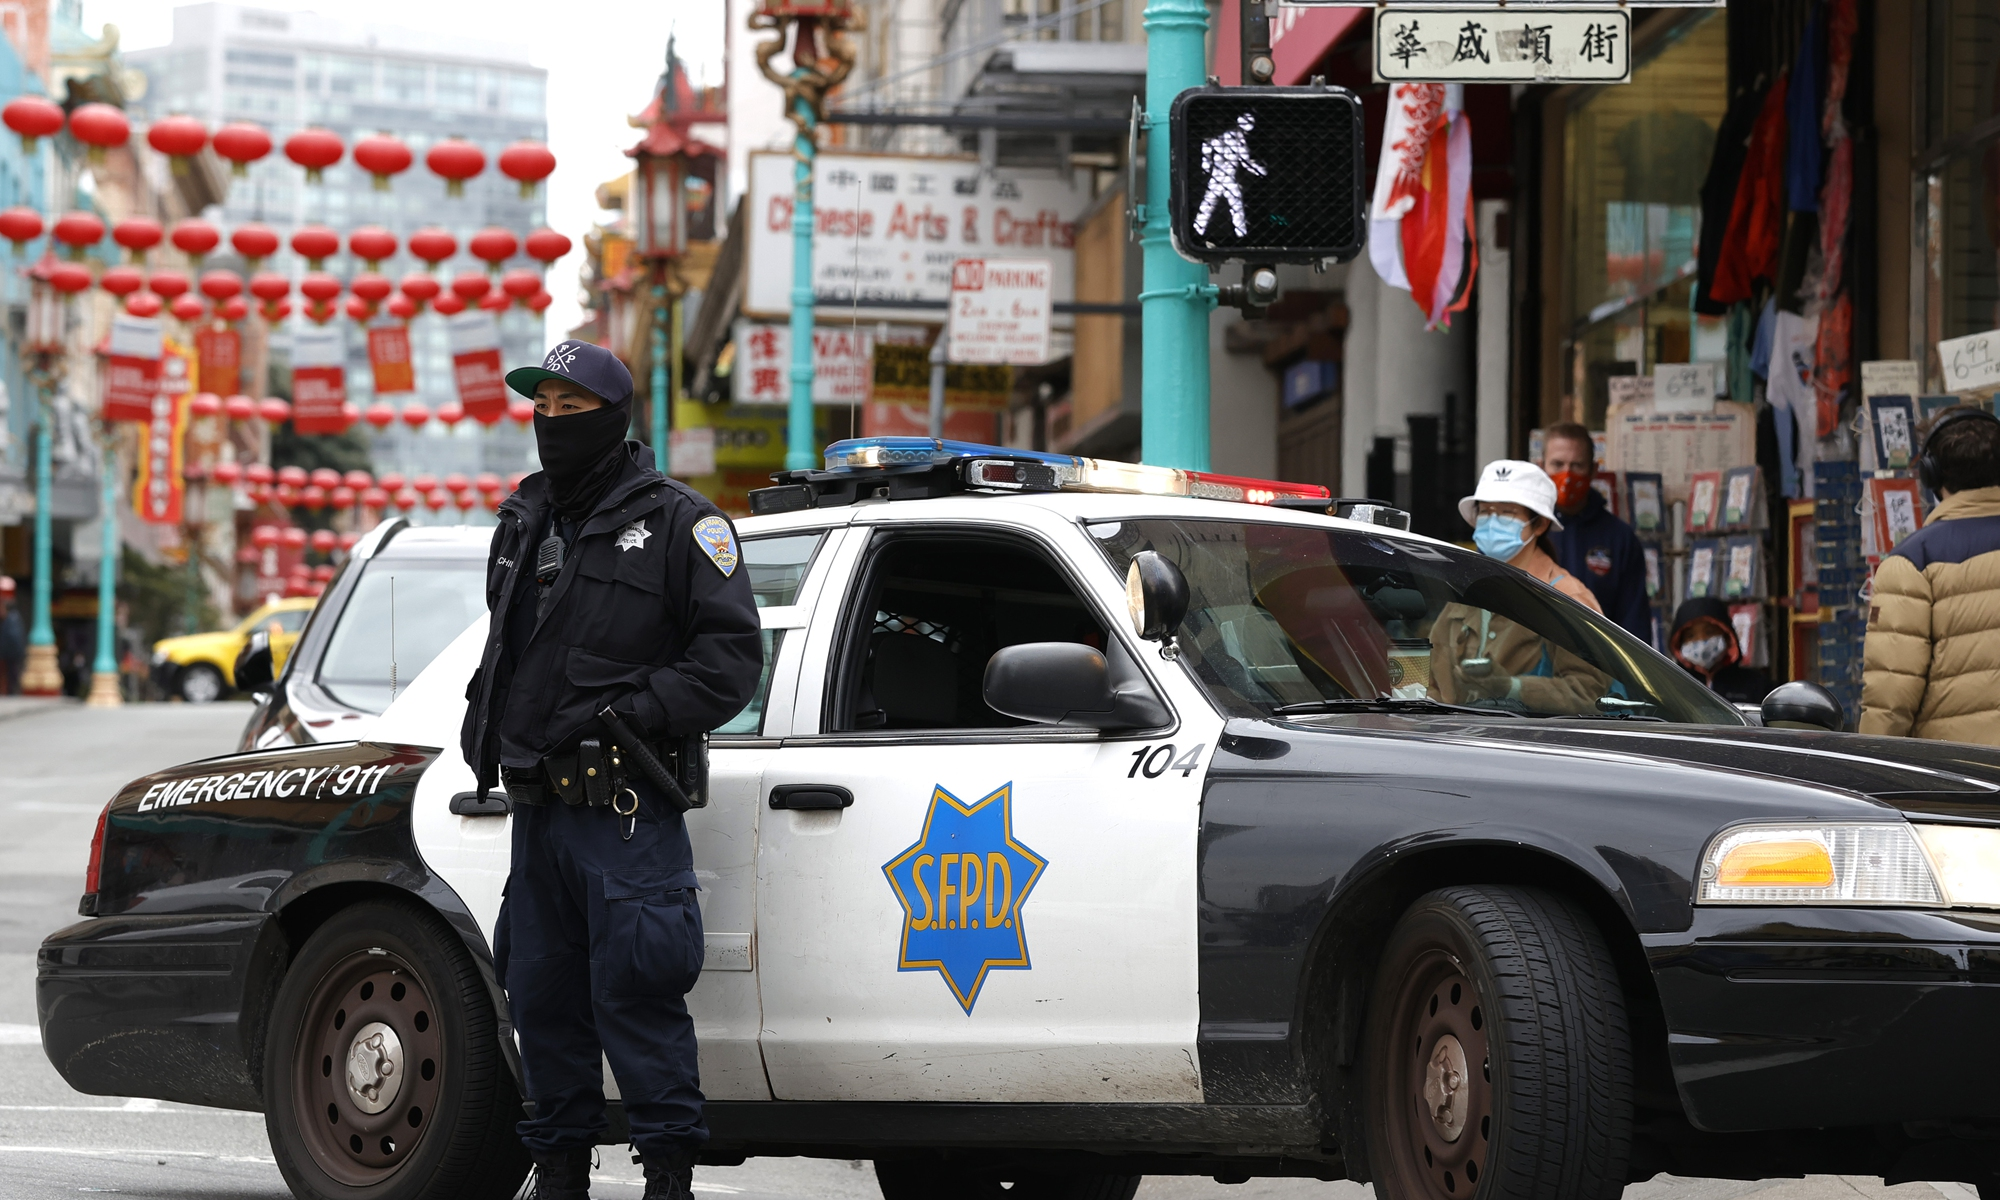 A San Francisco police officer stands guard on Grant Avenue in Chinatown on Wednesday. The San Francisco police have stepped up patrols in Asian neighborhoods in the wake of a series of shootings at spas in the Atlanta area that left eight people dead, including six Asian women. The main suspect, Robert Aaron Long, 21, has been taken into custody. The San Francisco Bay Area is also seeing an increase in violence against the Asian community. Photo: VCG